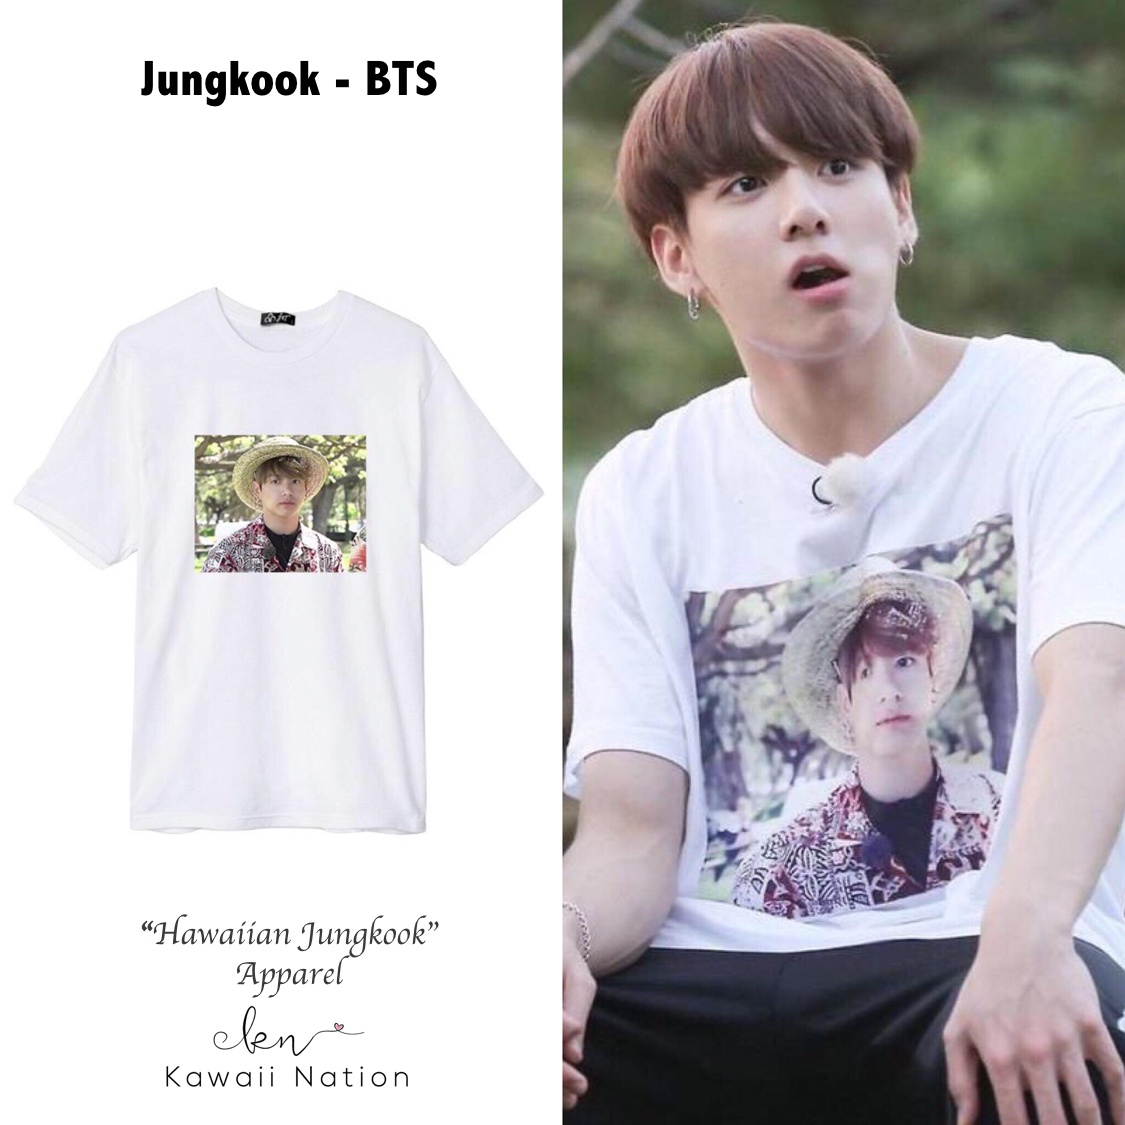 Bts Fashion Inspired Outfits V Tae Hyung Jungkook Rm Rap Monsta Jin Jimin Jhope Suga Kawaii Nation Celebs Kpop Tshi Bts Shirt Bts Inspired Outfits Bts Clothing